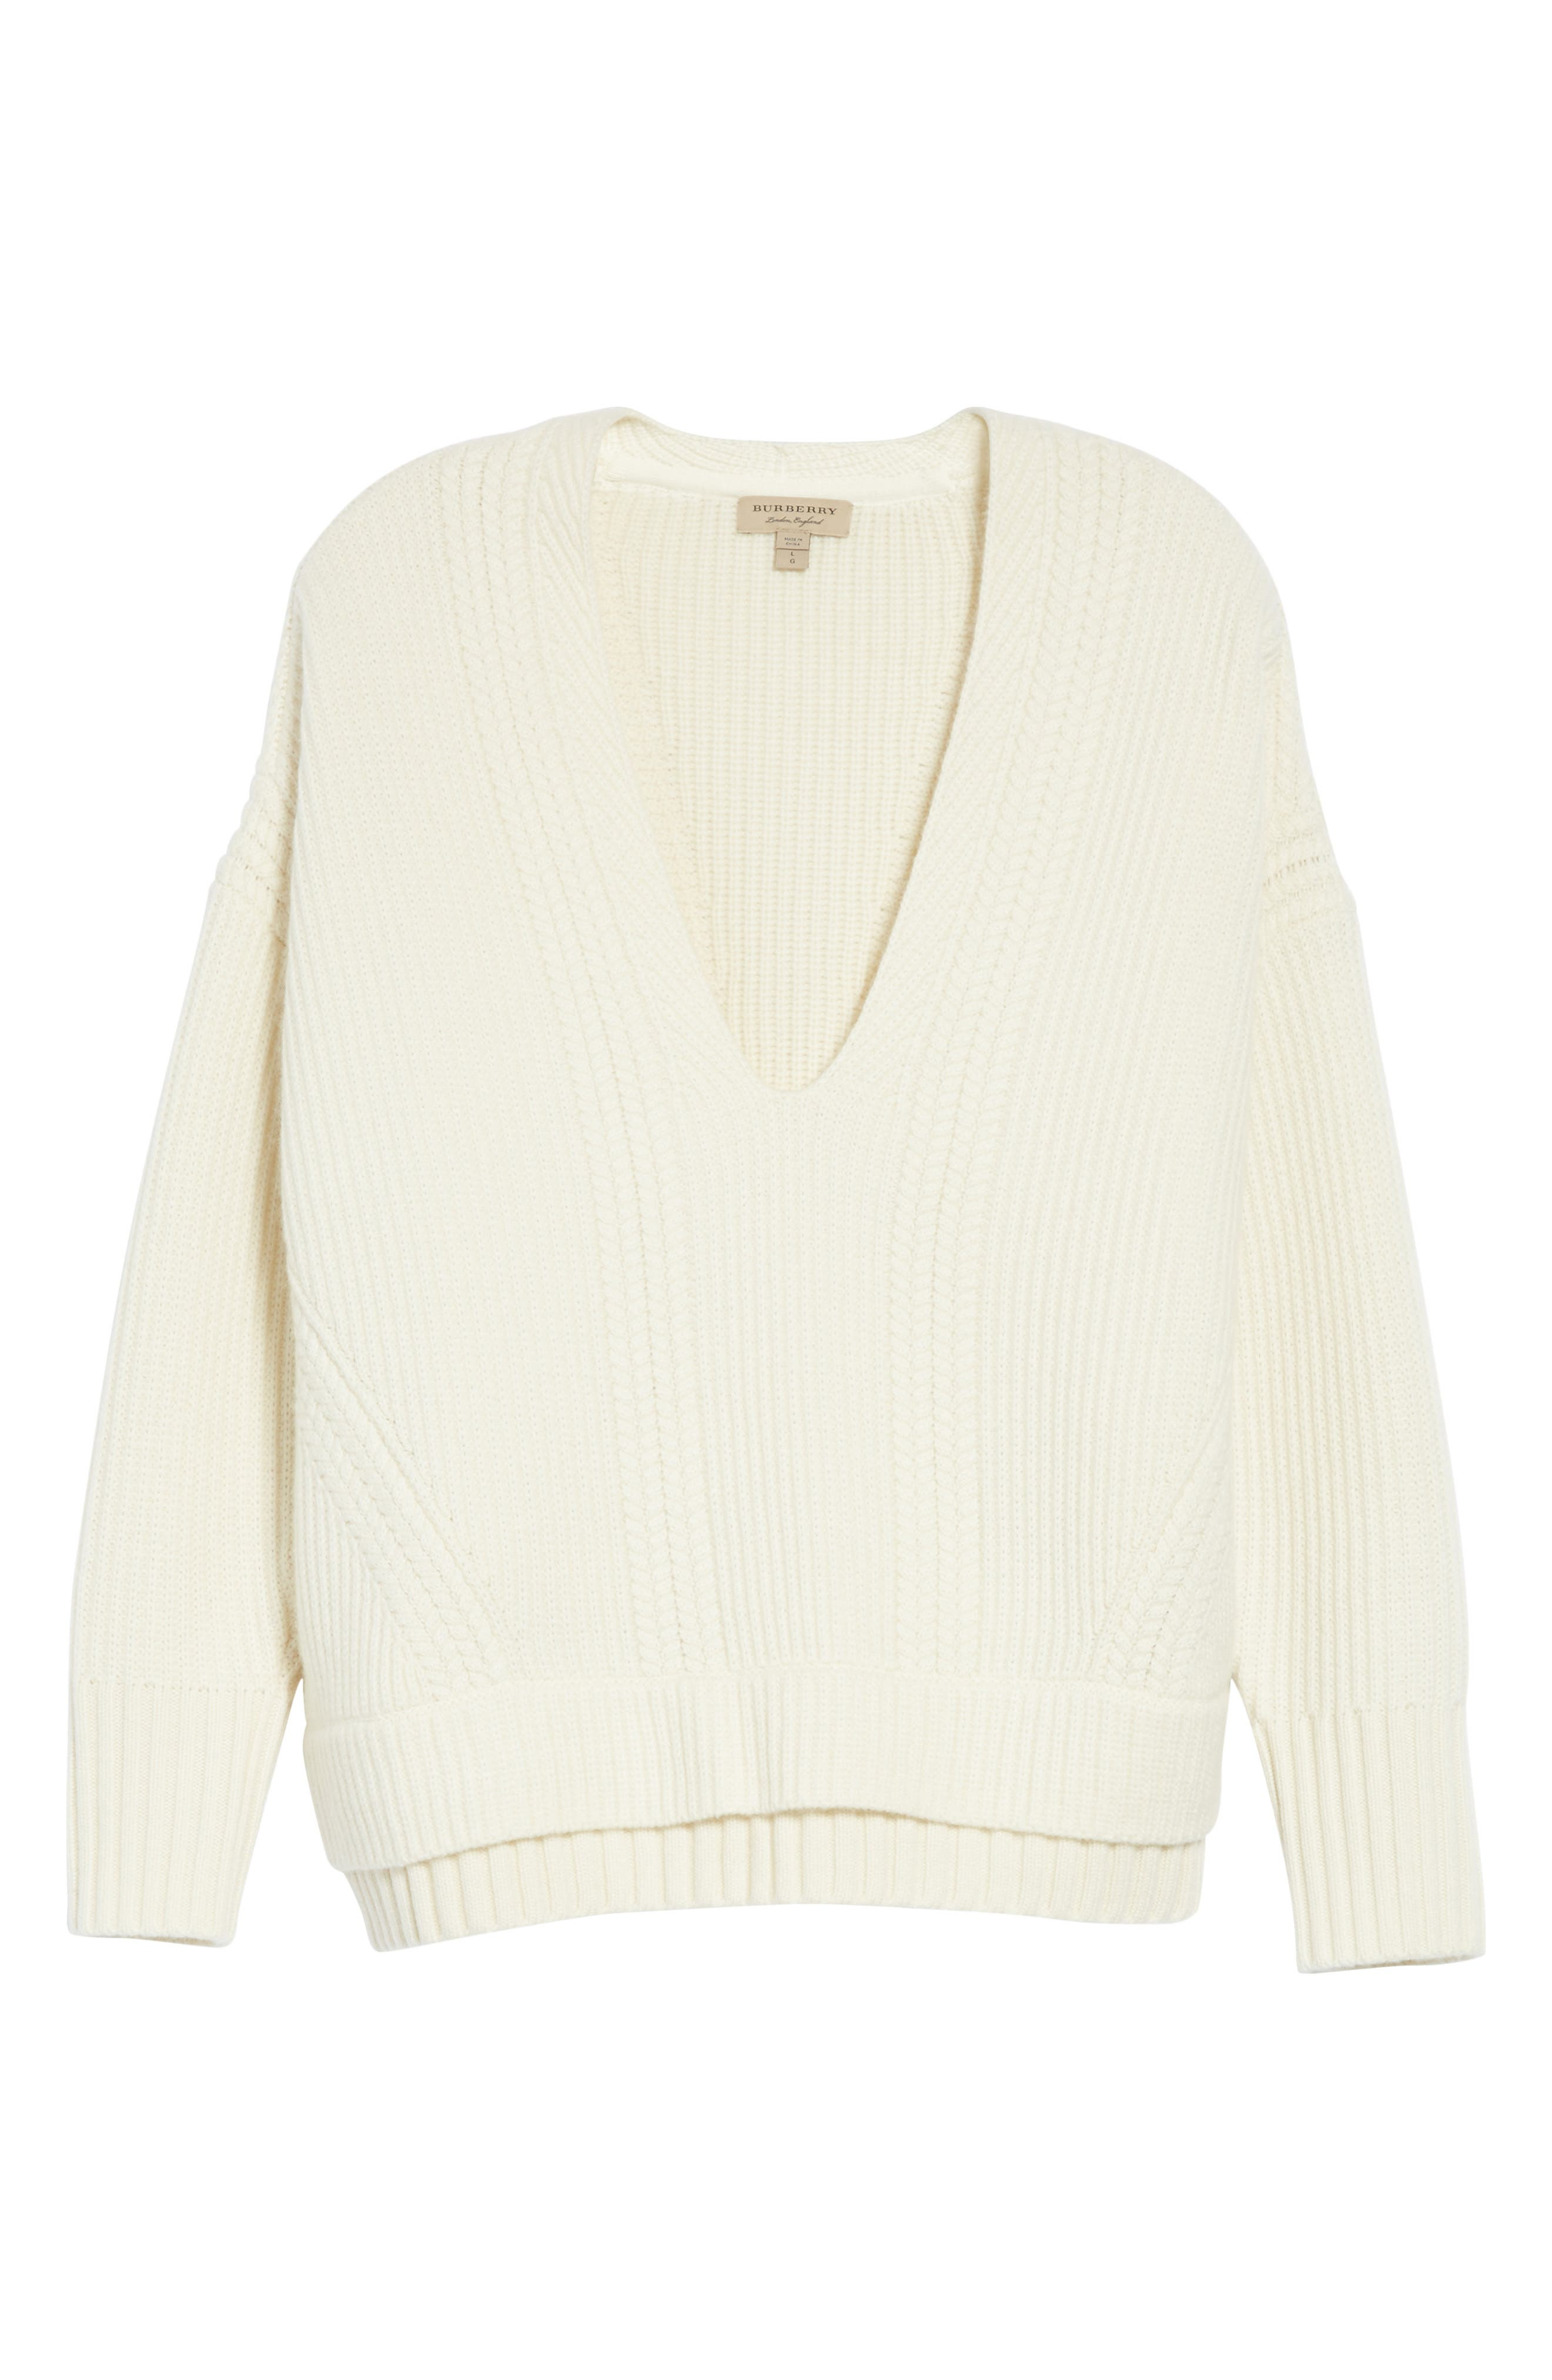 Santerno Wool & Cashmere Cable Knit Sweater,                             Alternate thumbnail 6, color,                             Natural White